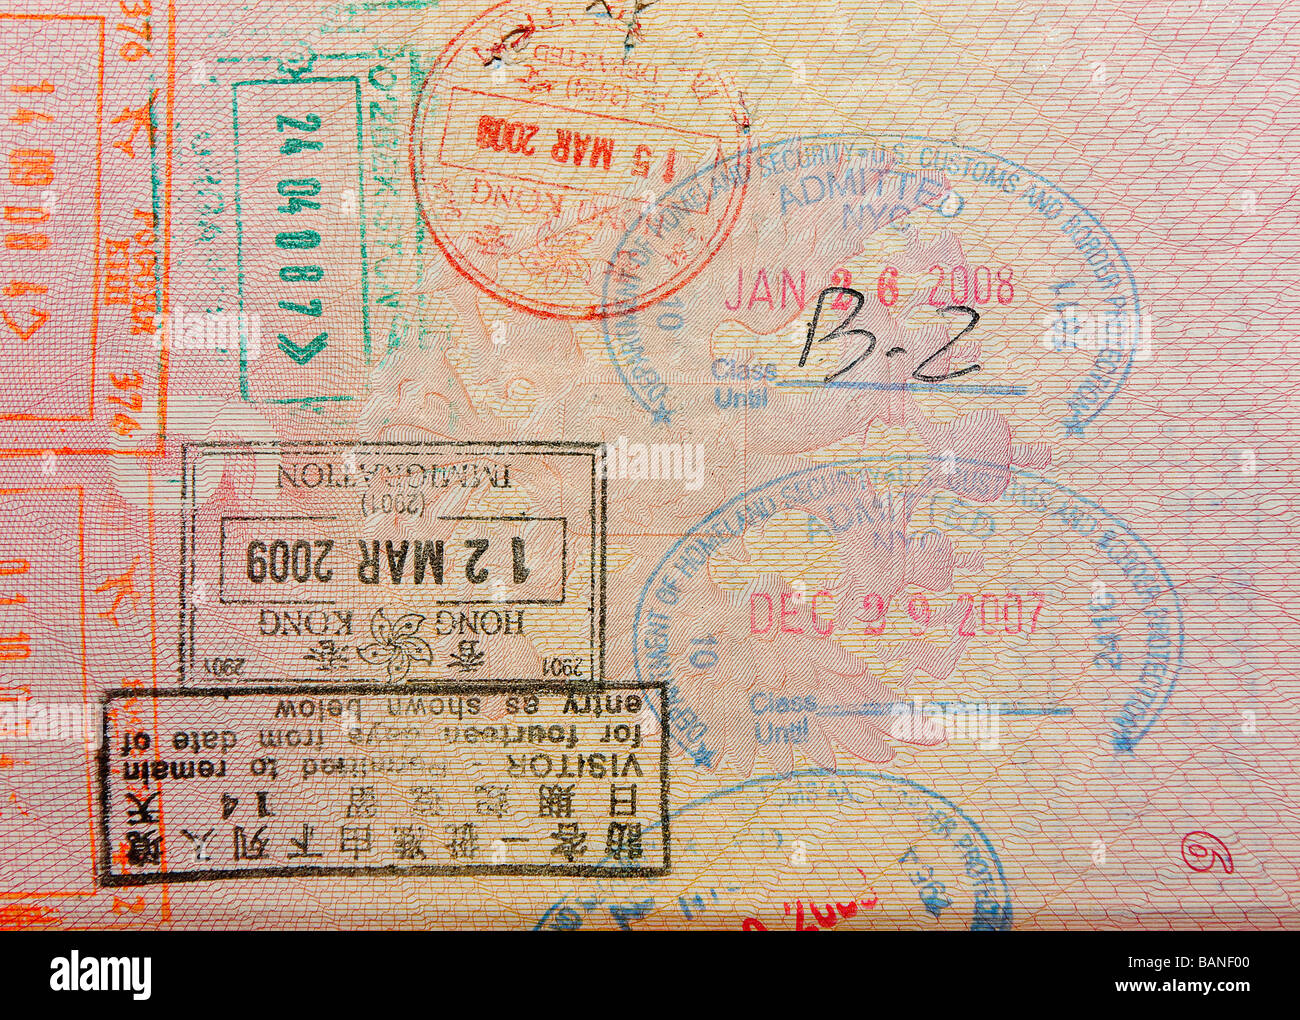 passport with hong kong stamps - Stock Image